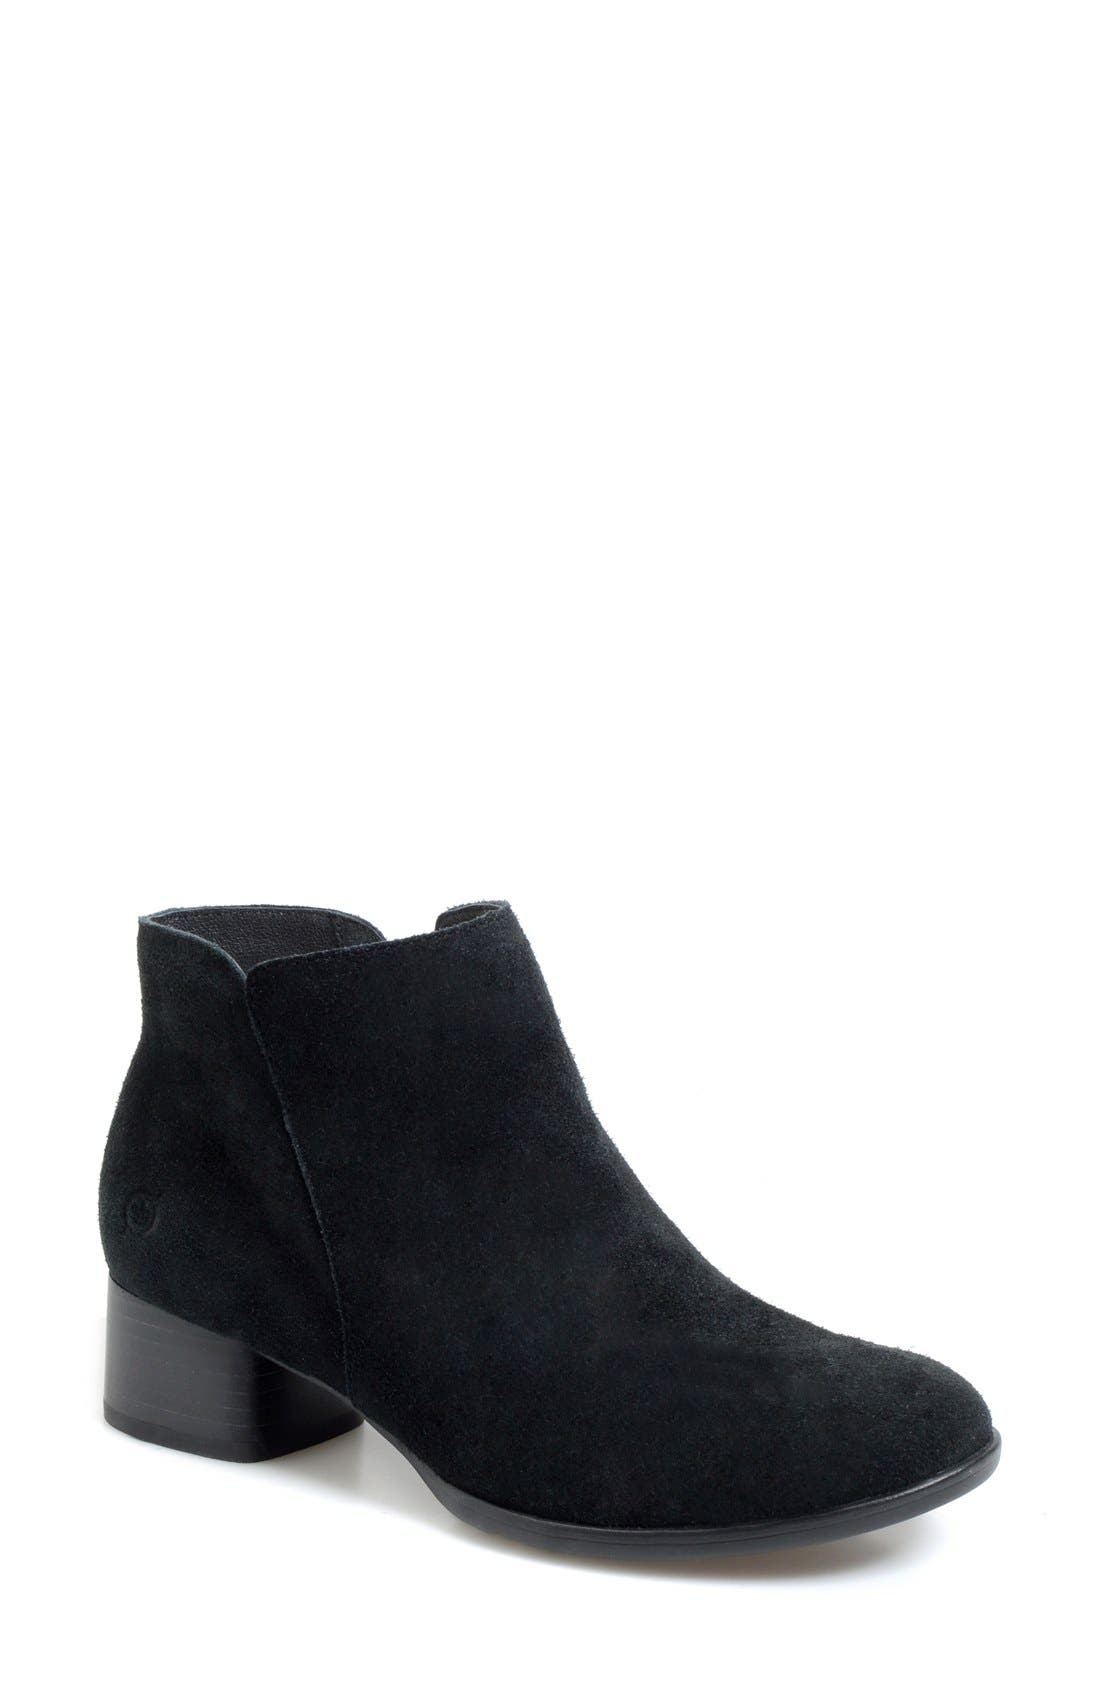 Alternate Image 1 Selected - Børn 'Holman' Round Toe Bootie (Women)